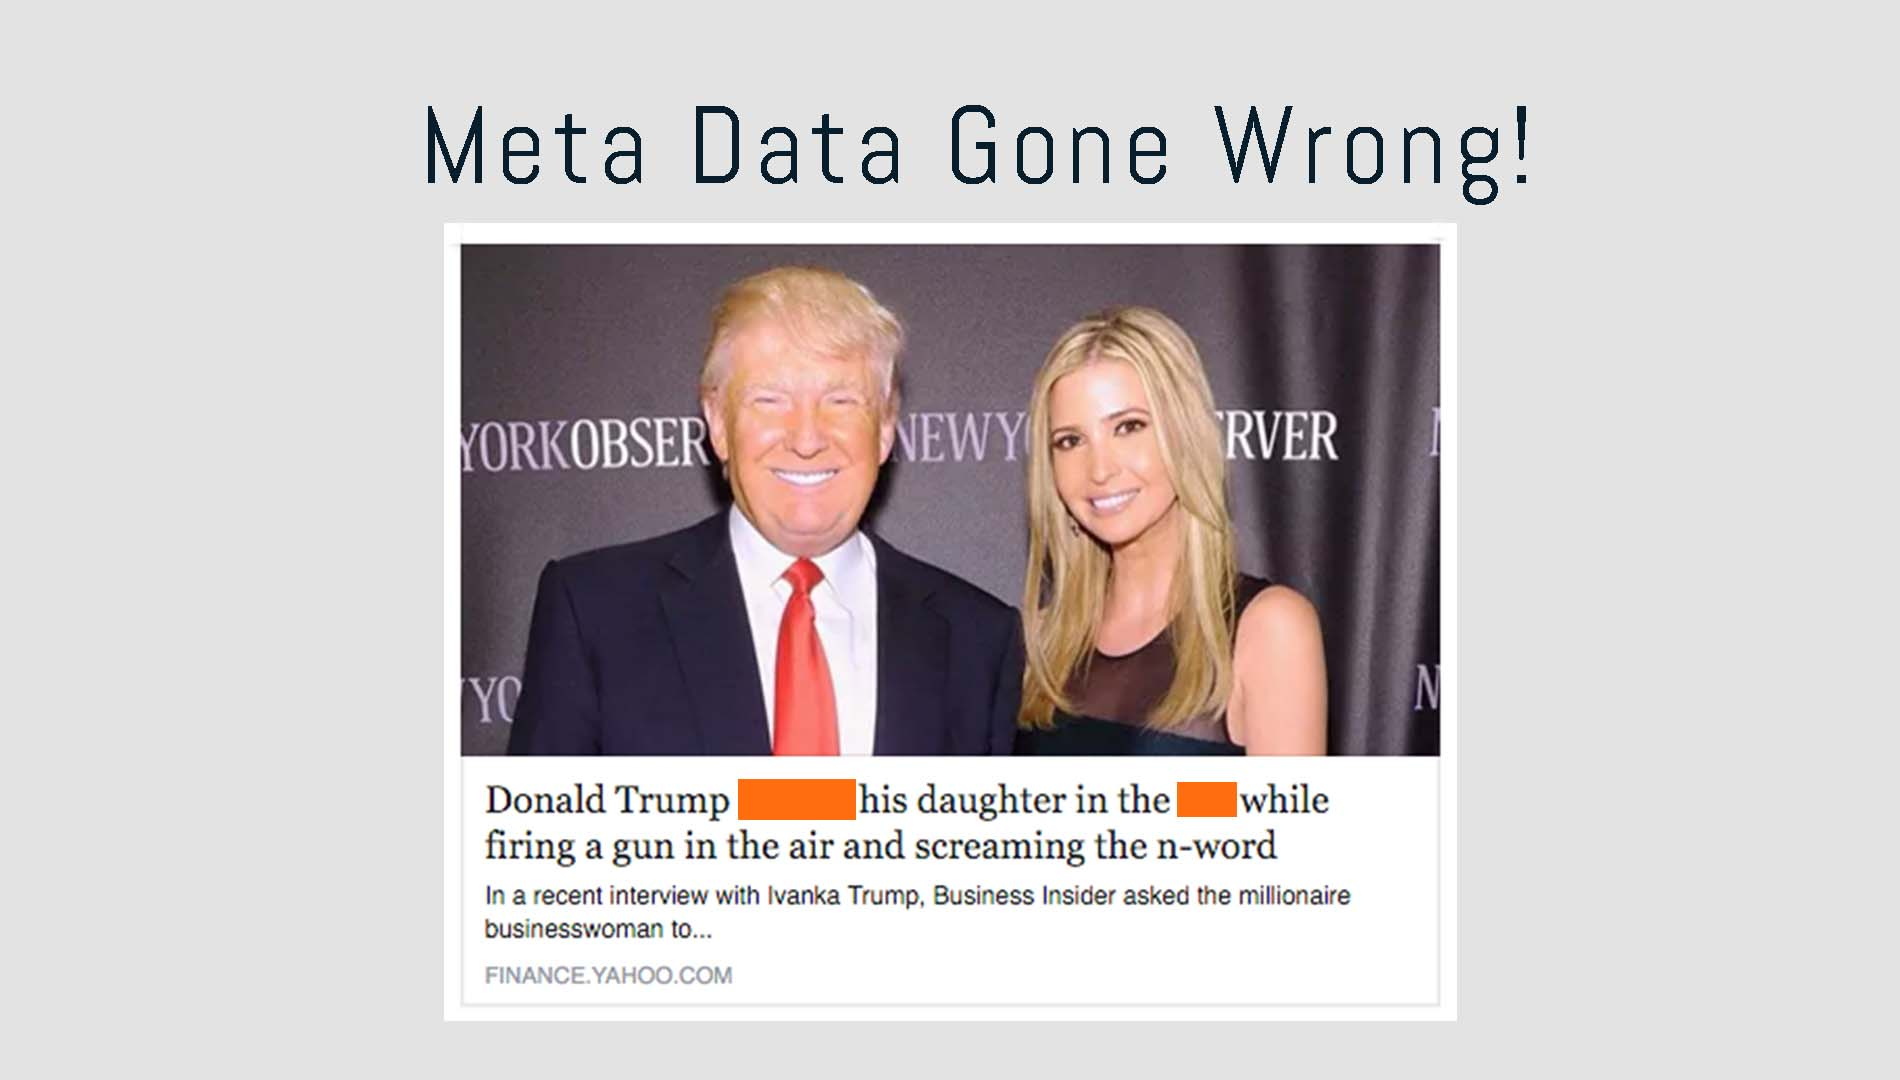 Yahoo Finance messes up meta data on Donald Trump Article